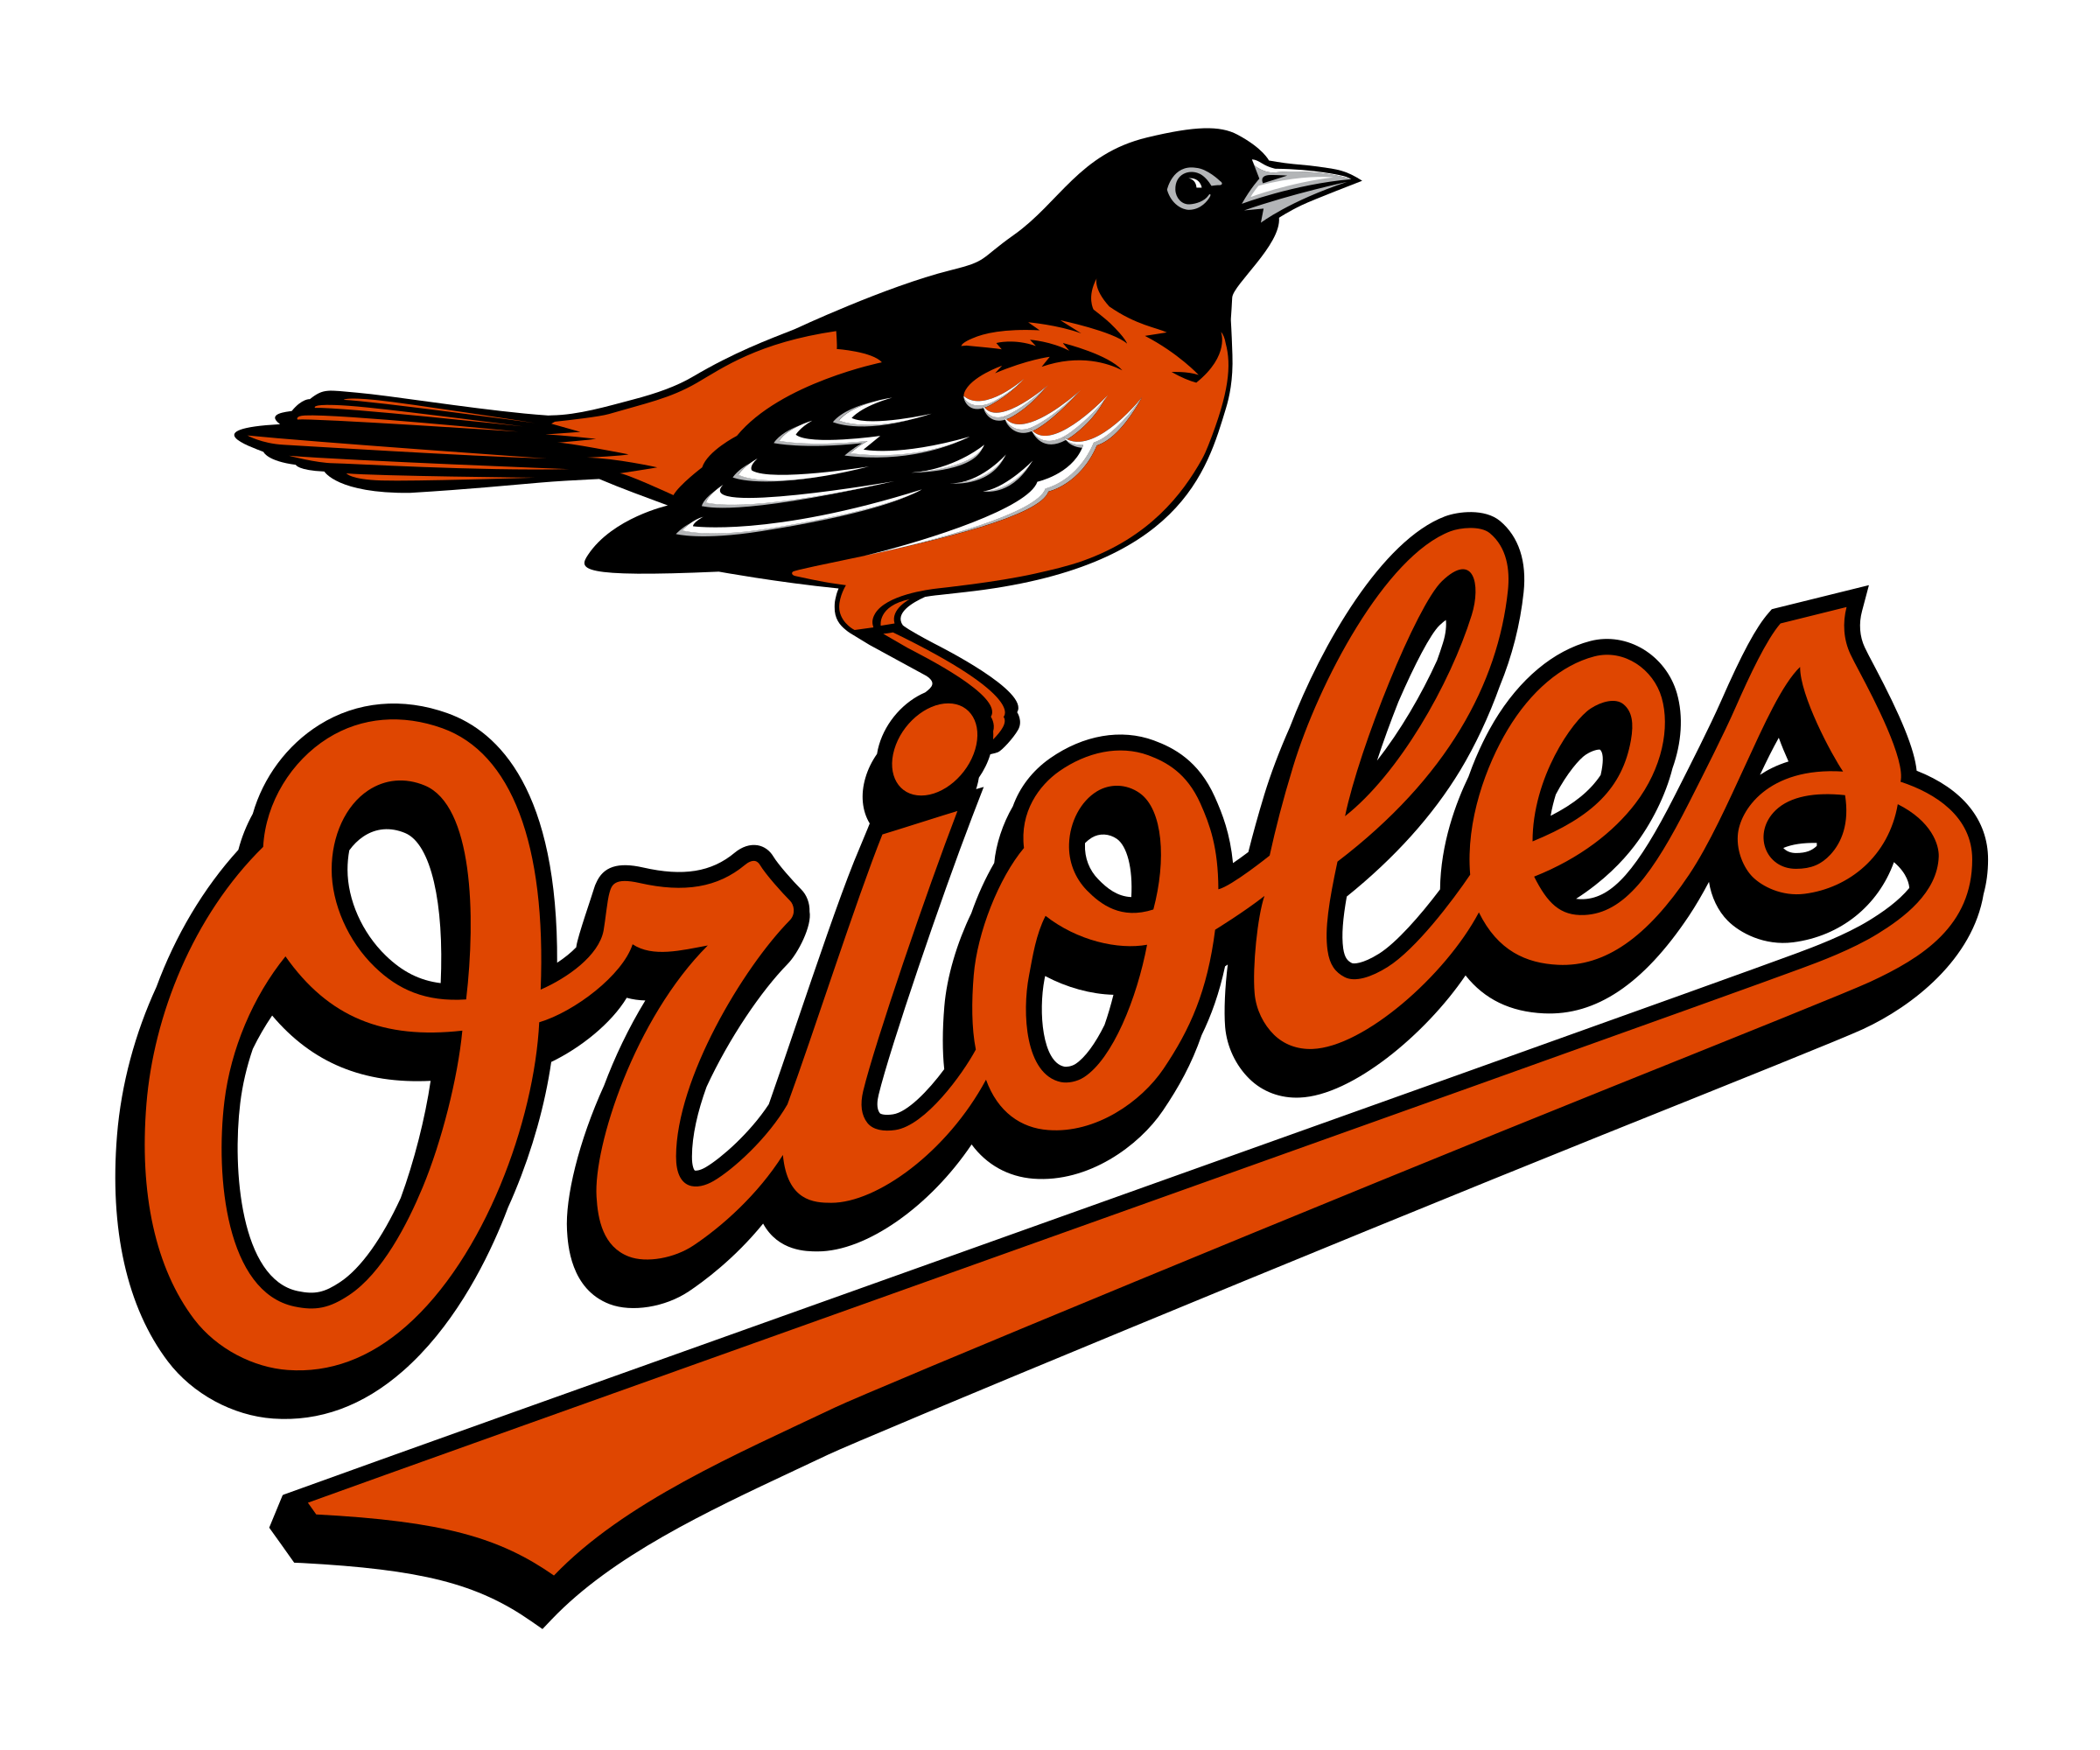 Baltimore Orioles Logo PNG Transparent & SVG Vector.